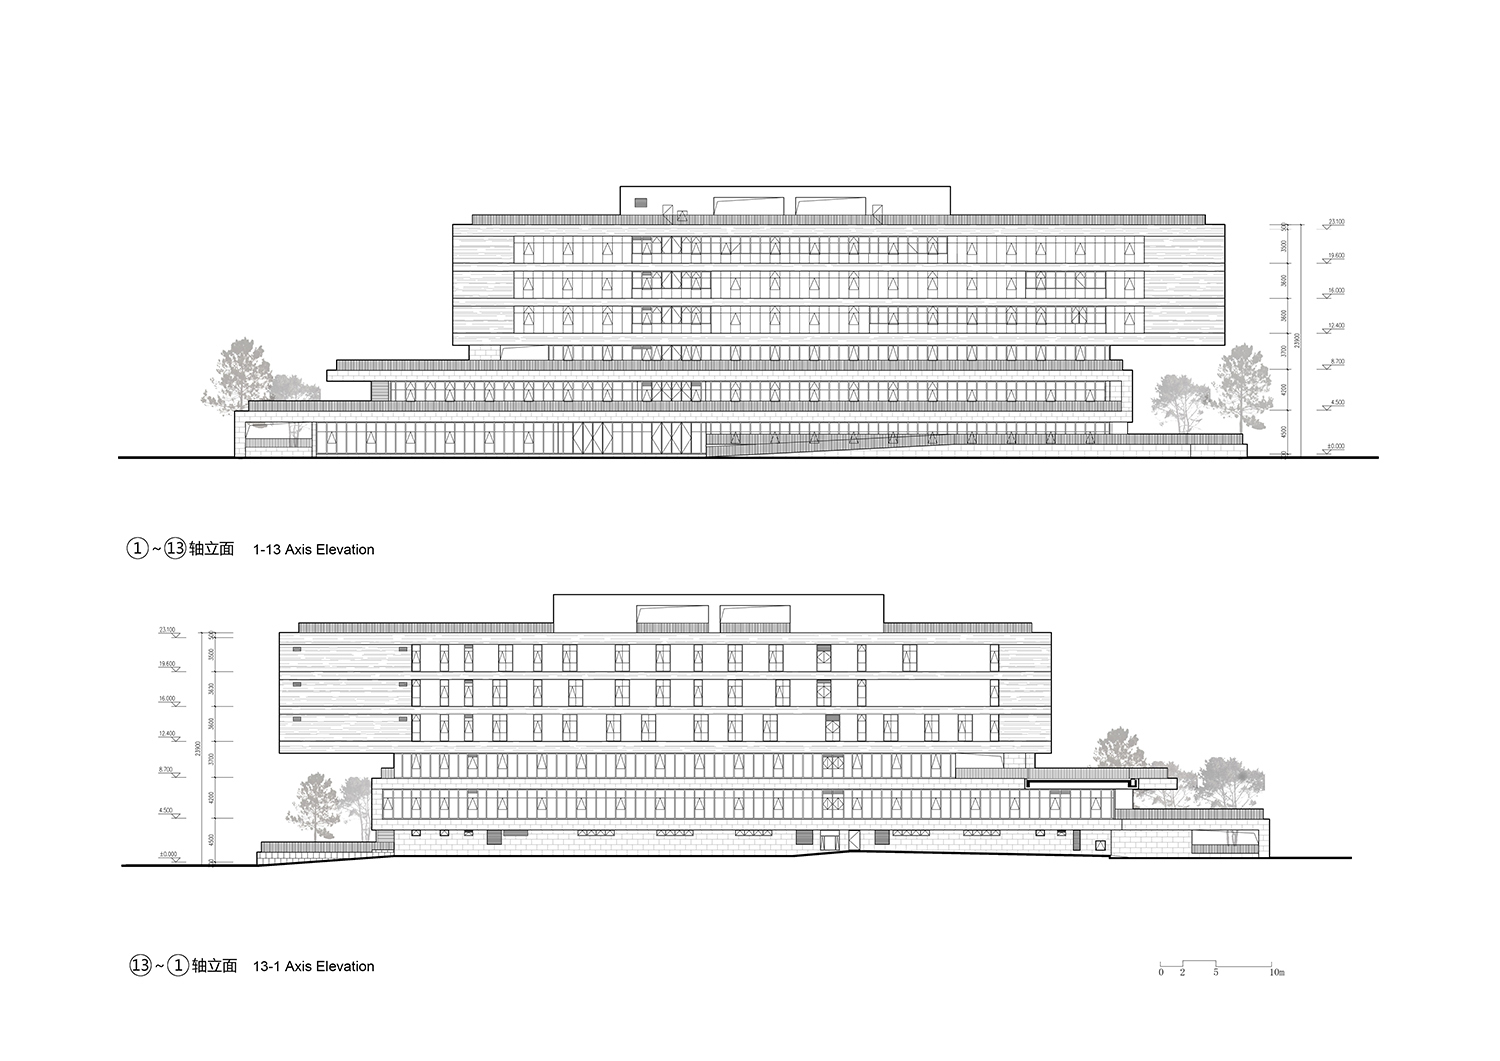 Elevation the Architectural Design and Research Institute of Zhejiang University Co., Ltd}